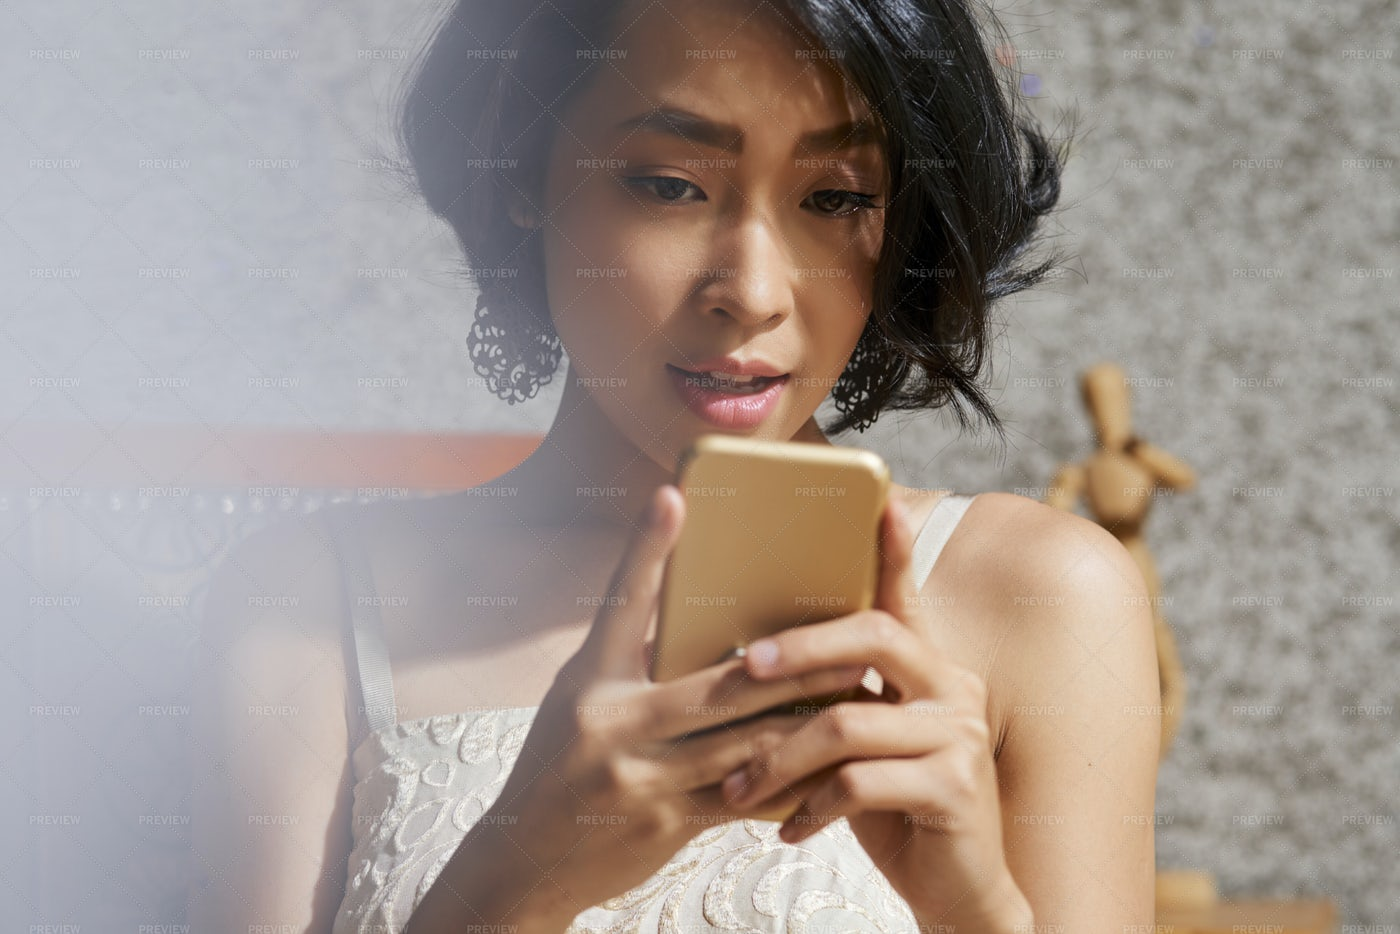 Woman Reading Article On Smartphone: Stock Photos